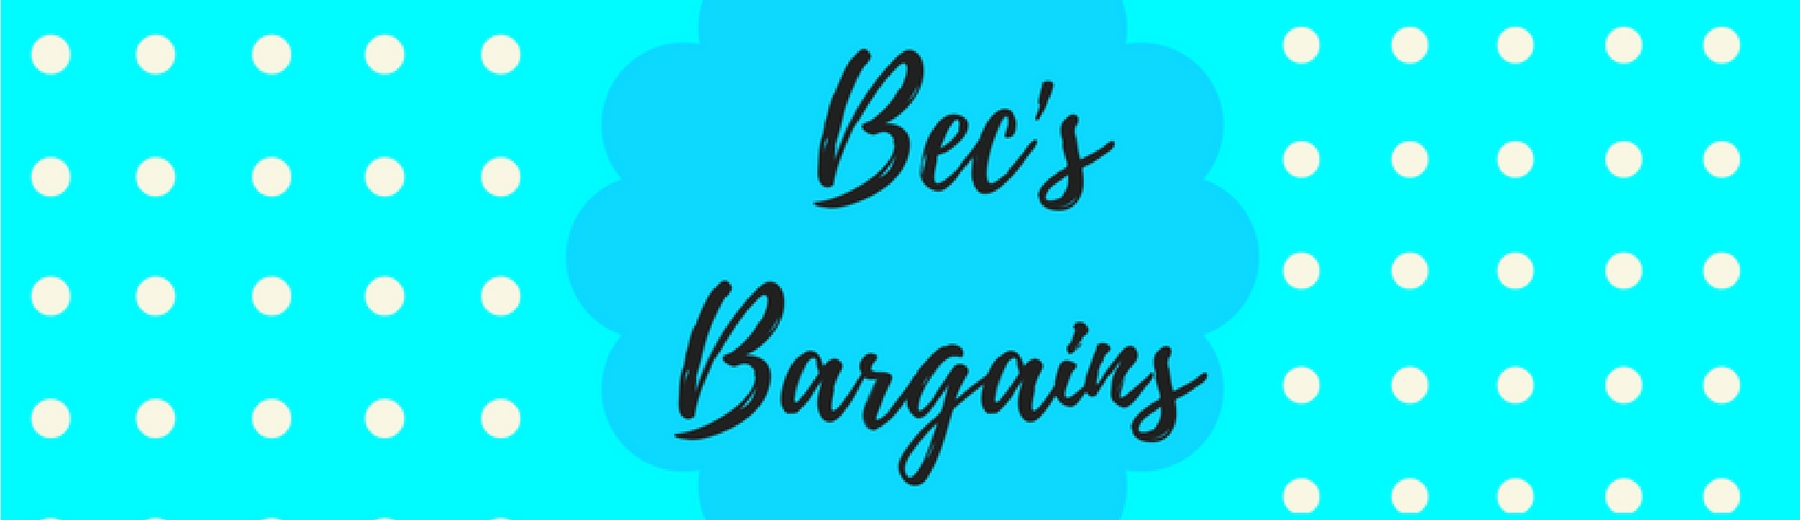 Bec's Bargains